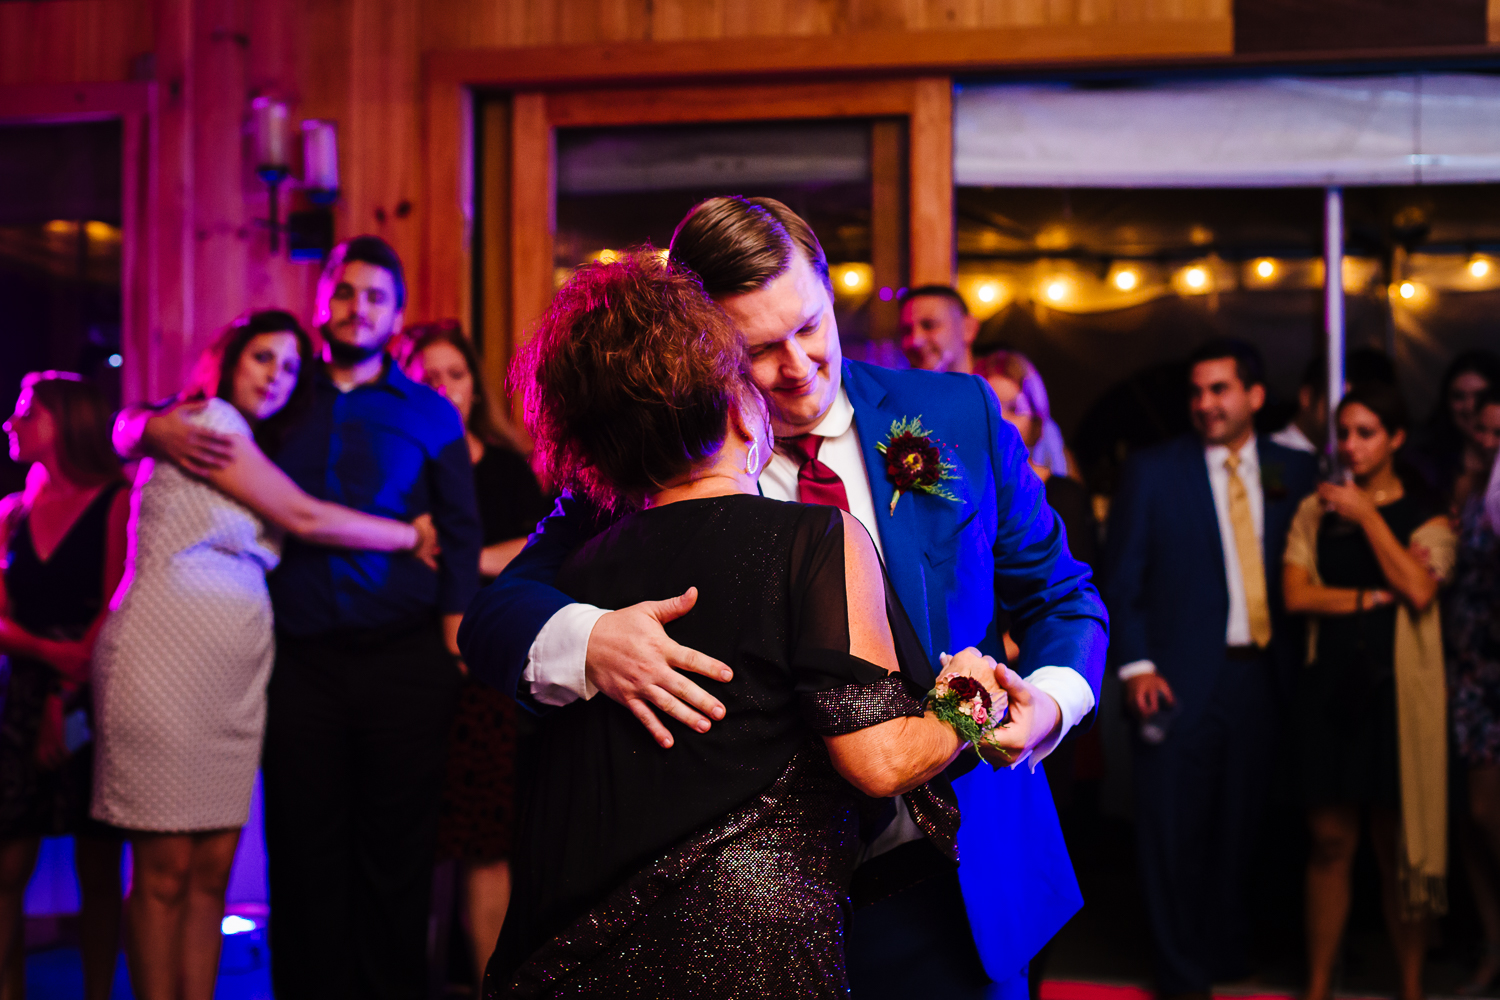 Groom and mother dance at wedding.